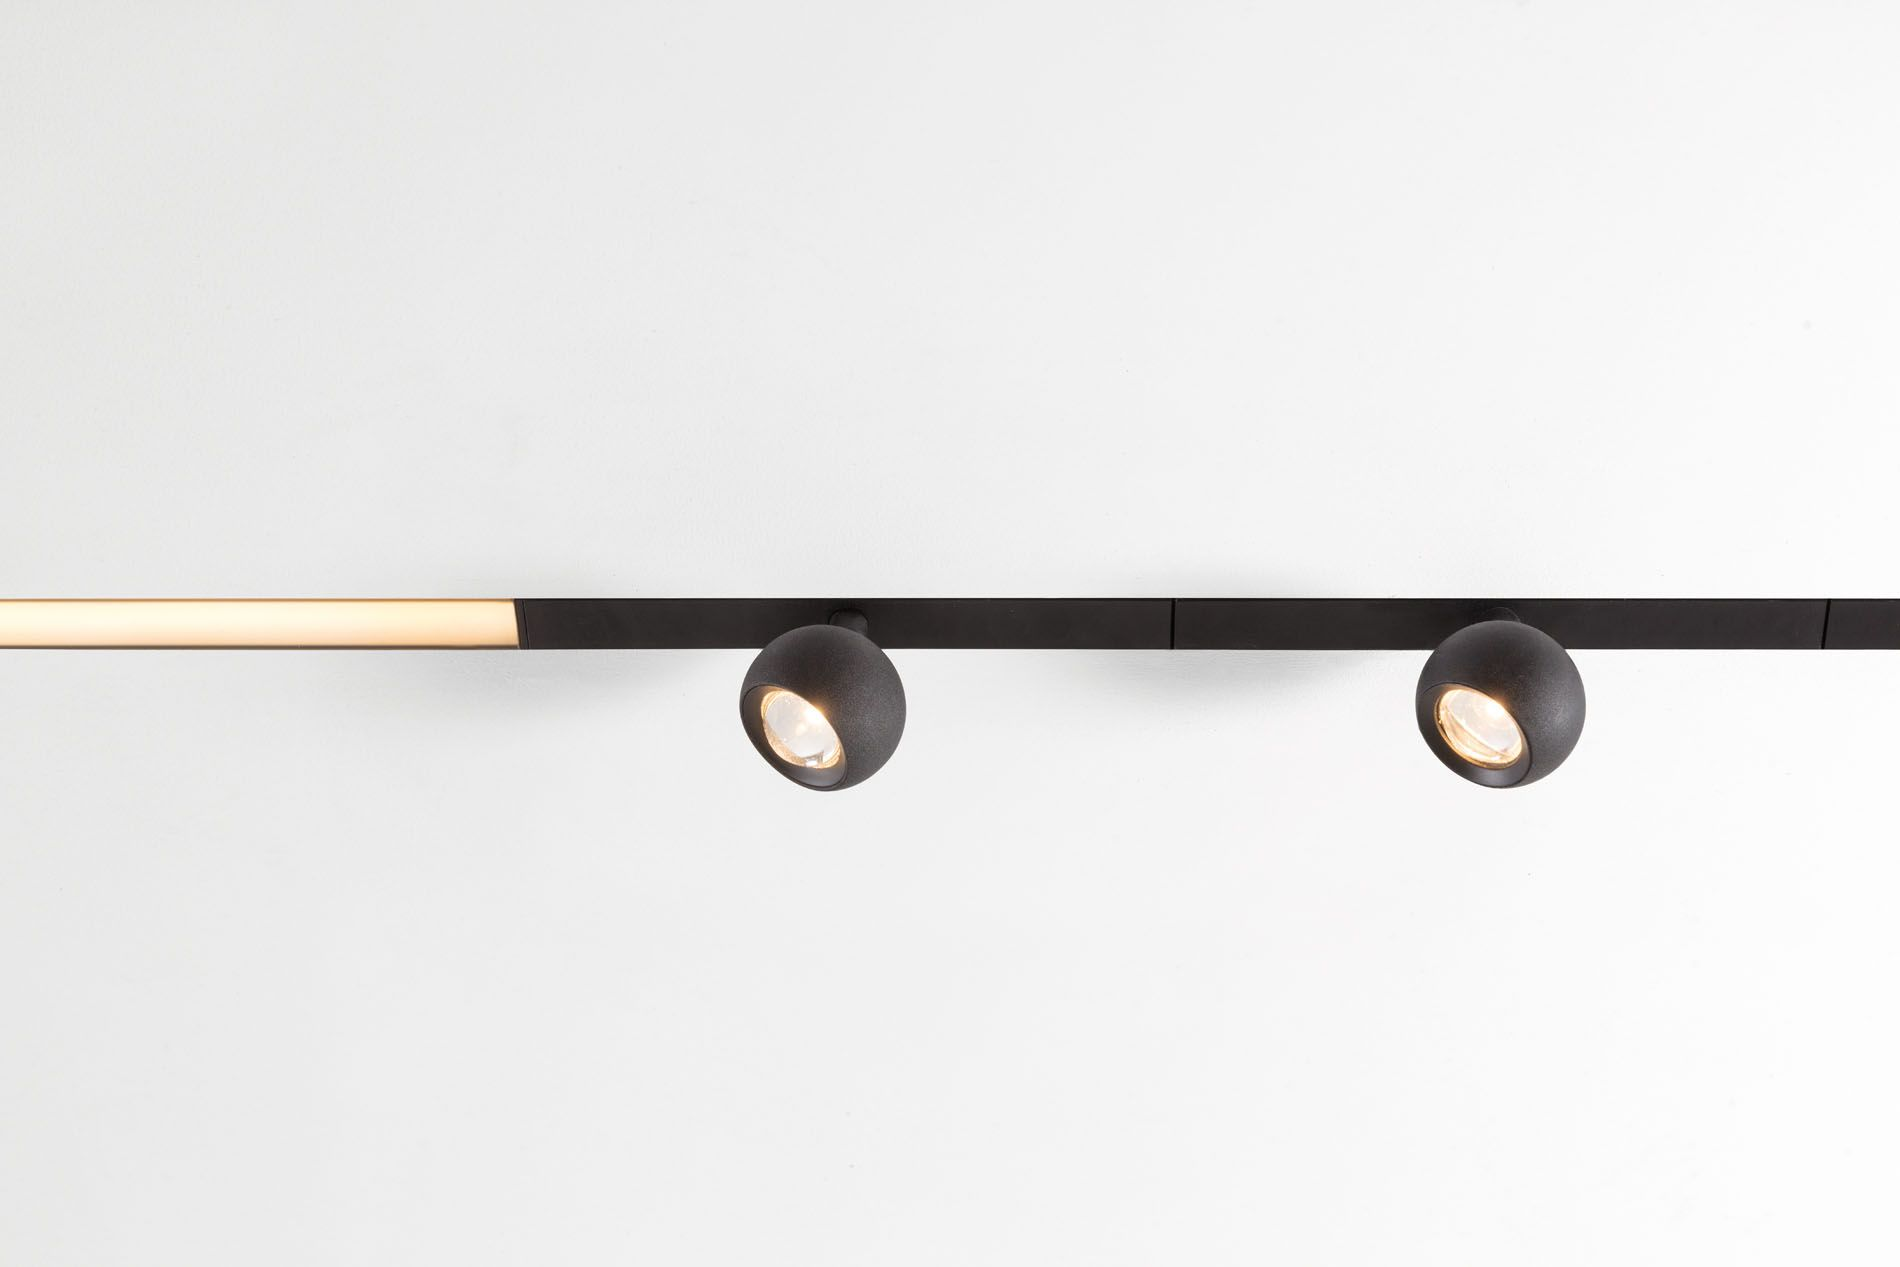 New Designed Specifically For Pista S Magnetic Track Rails